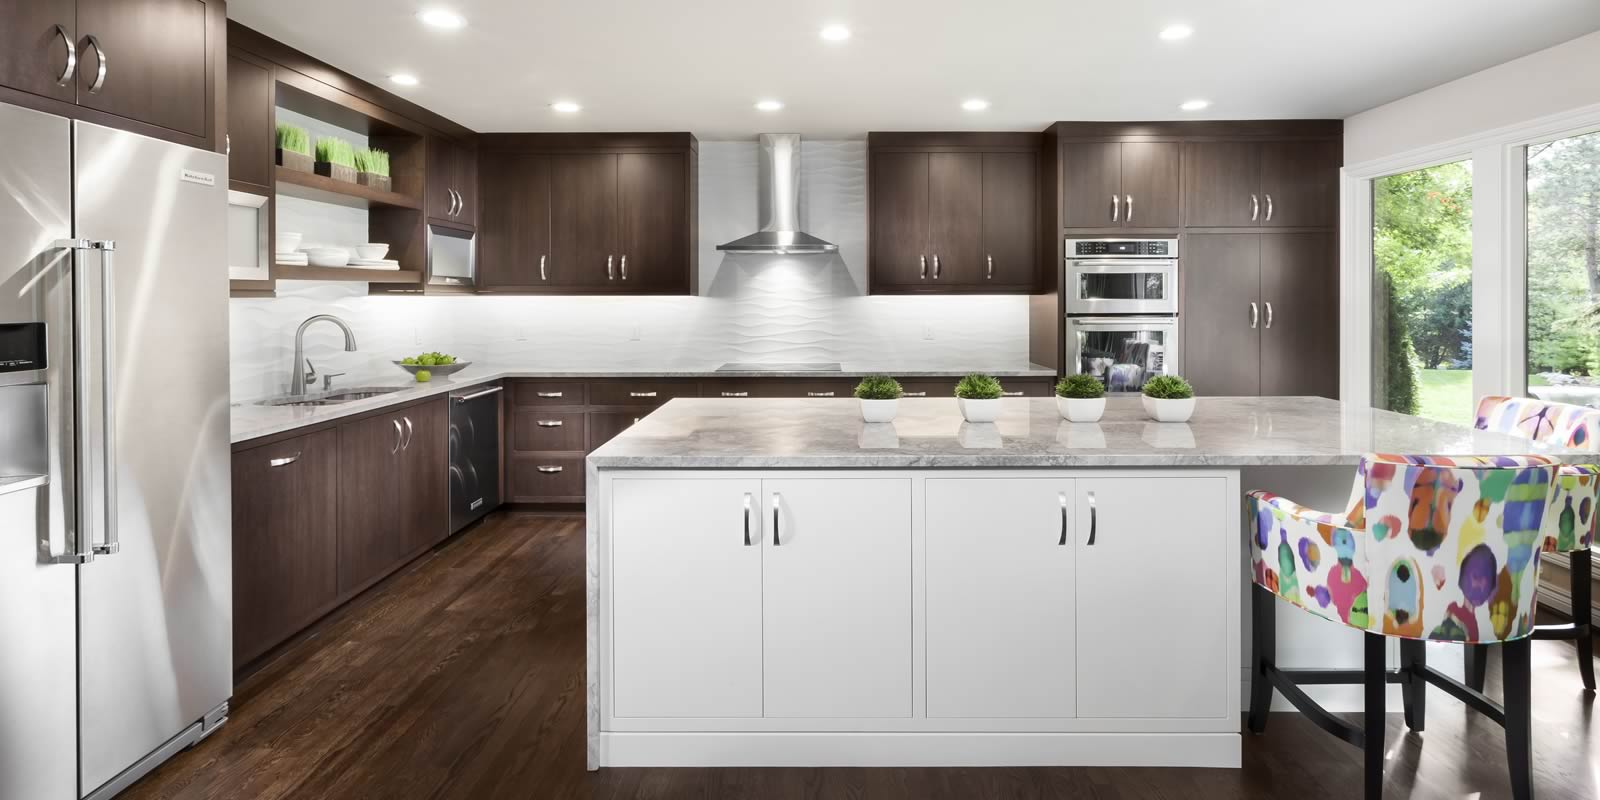 Timber & Toil - Custom Cabinets in Southeast Michigan